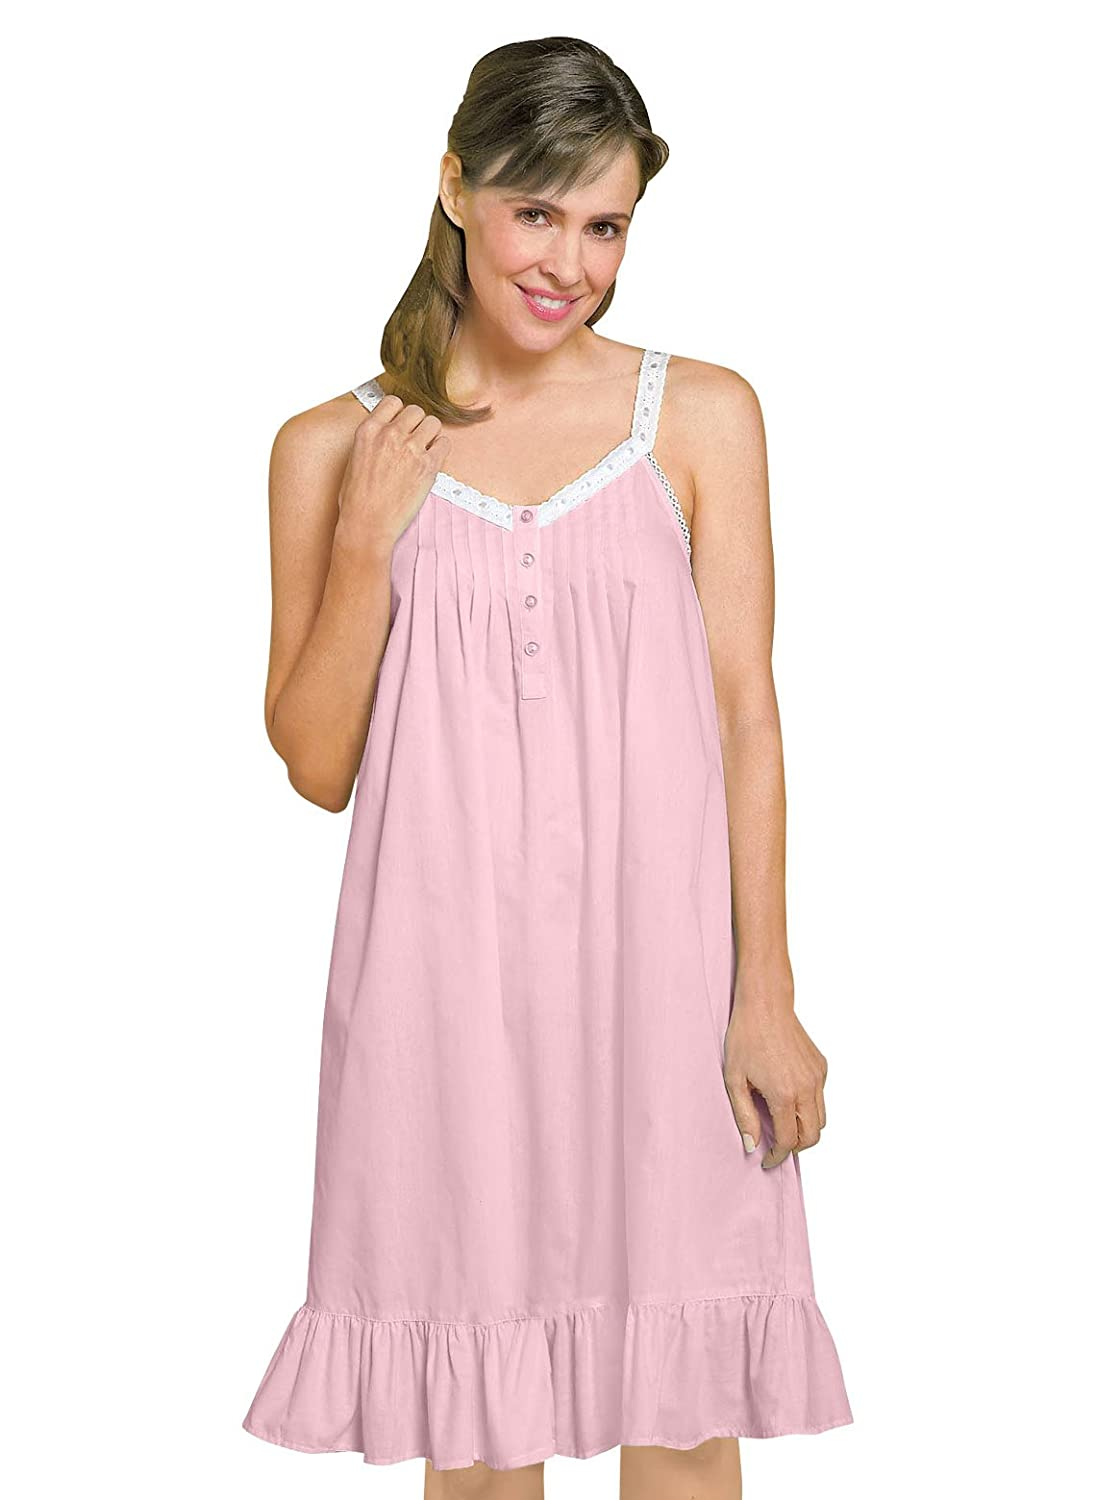 Carol Wright Gifts Sleeveless Nightgown, Pink, Size Extra Large (1X ...